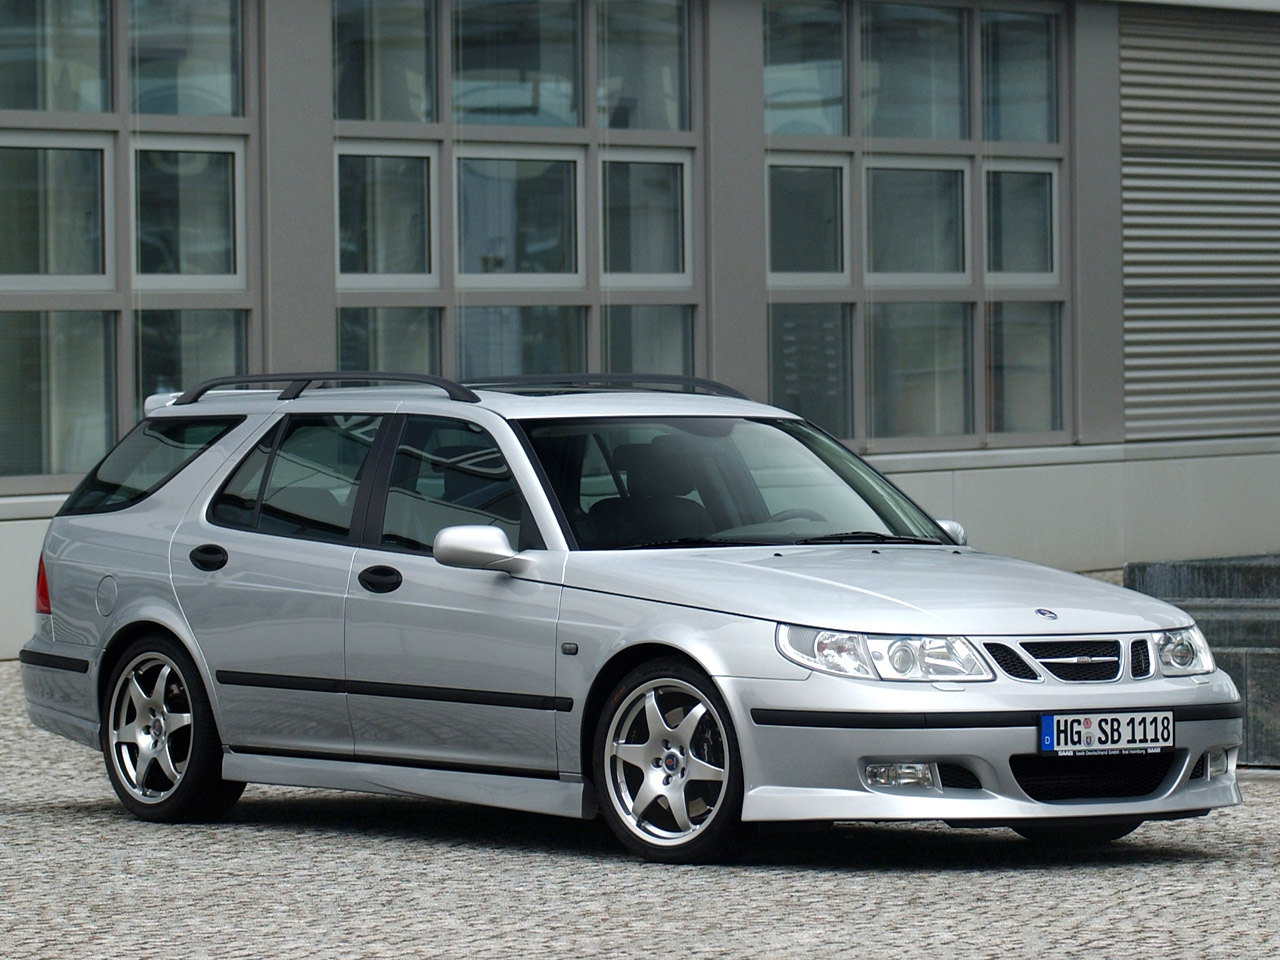 hirsch performance saab 9 5 wagon aero photos. Black Bedroom Furniture Sets. Home Design Ideas